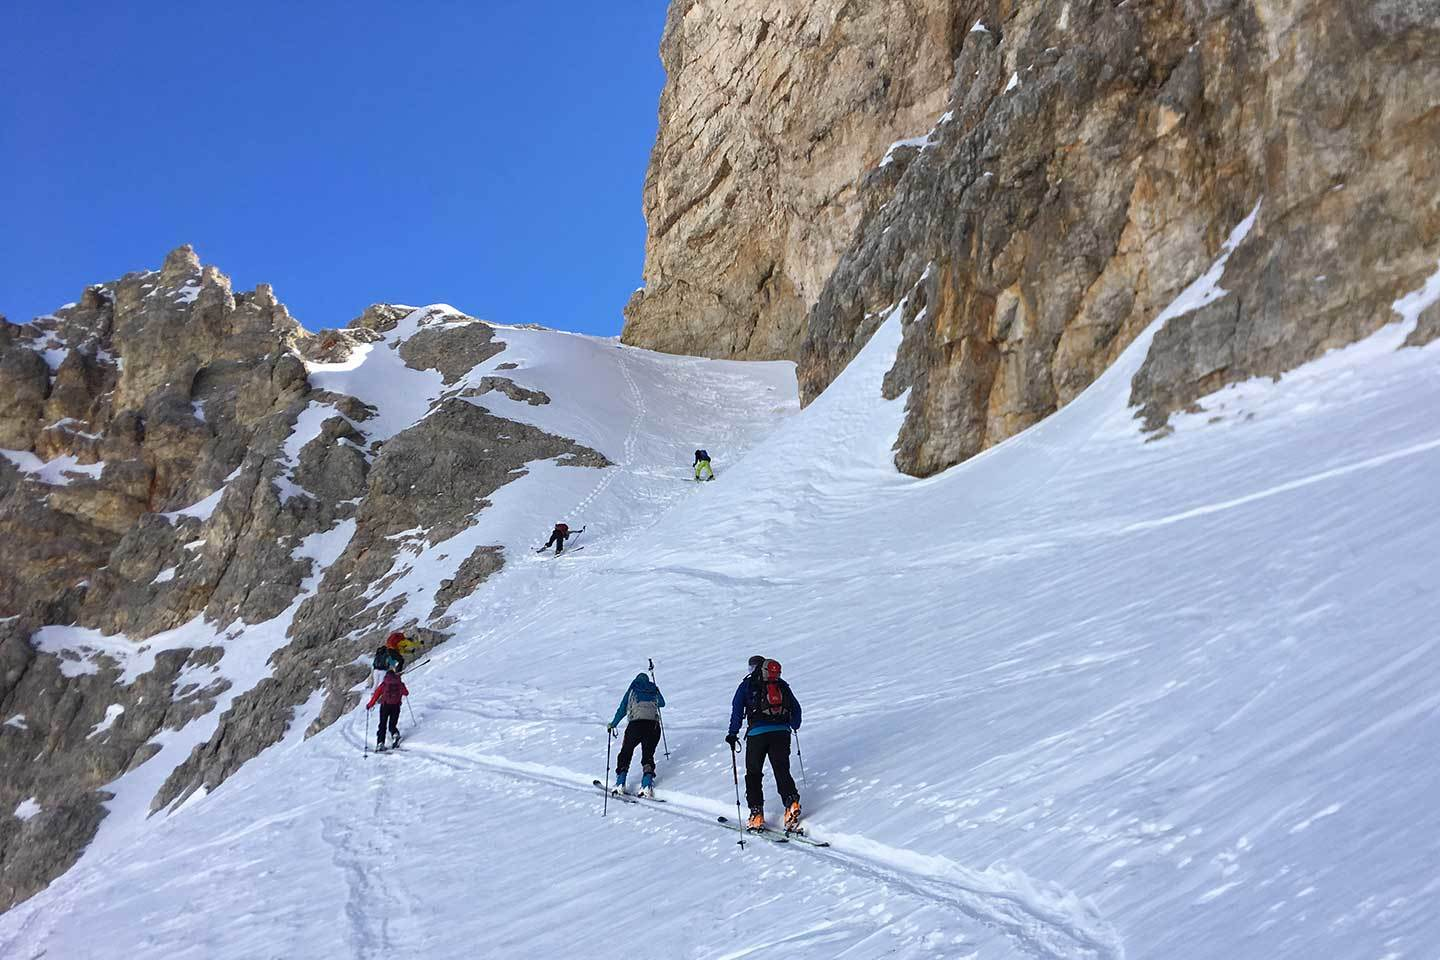 Ski Mountaineering to Croda Rossa d'Ampezzo at Forcella Colfiedo